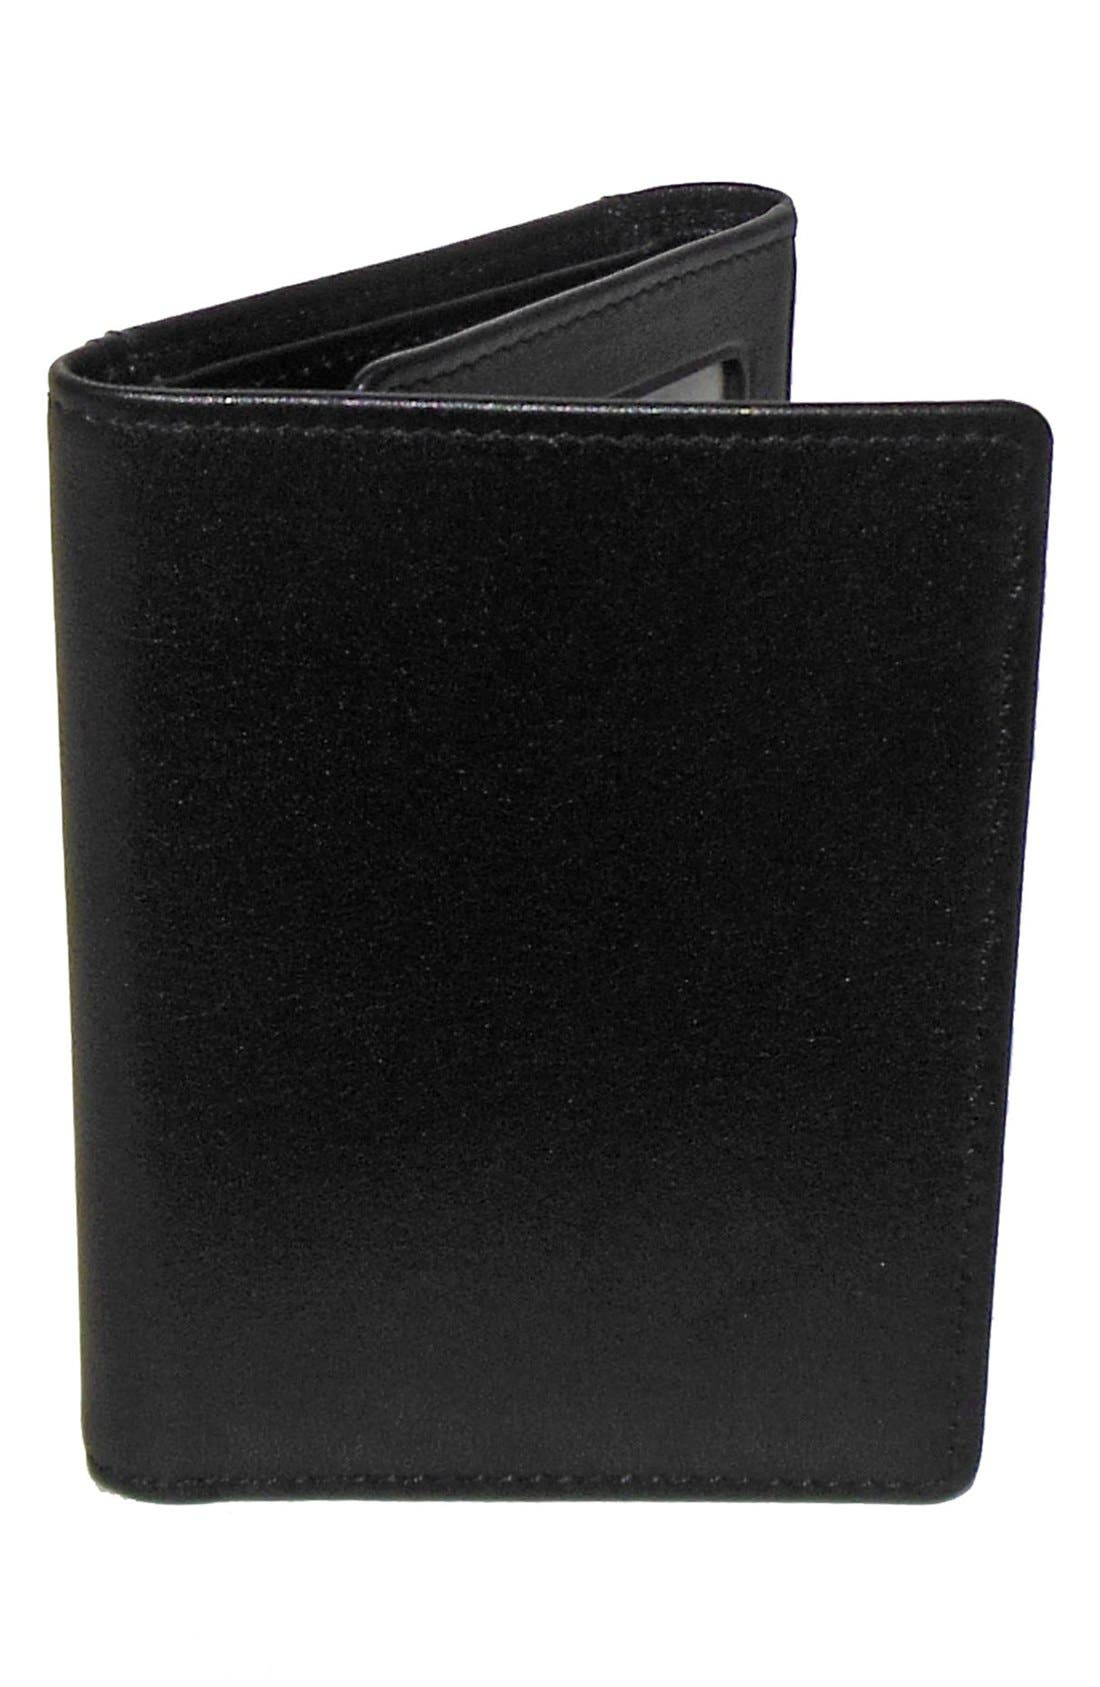 Alternate Image 1 Selected - Boconi 'Grant' RFID Blocker Leather Trifold Wallet